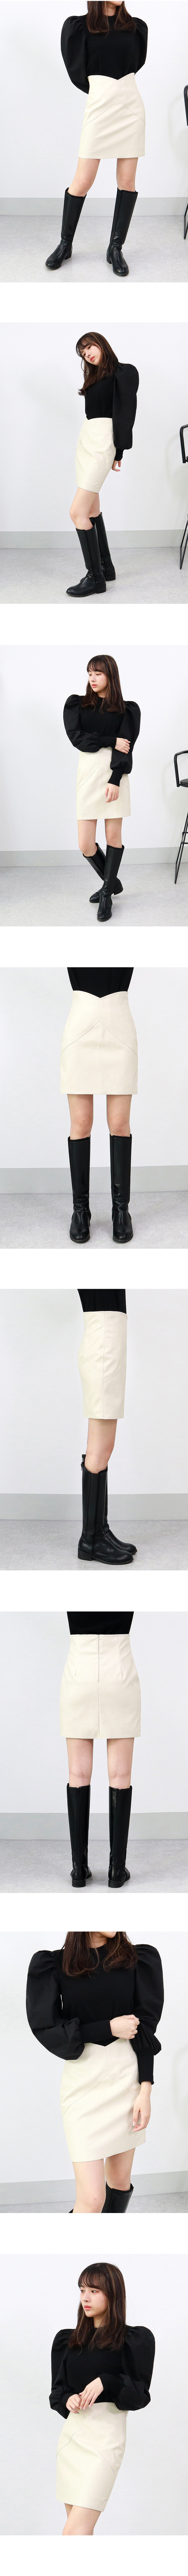 포텐스타(POTENT STAR) Wave leather skirt - ivory